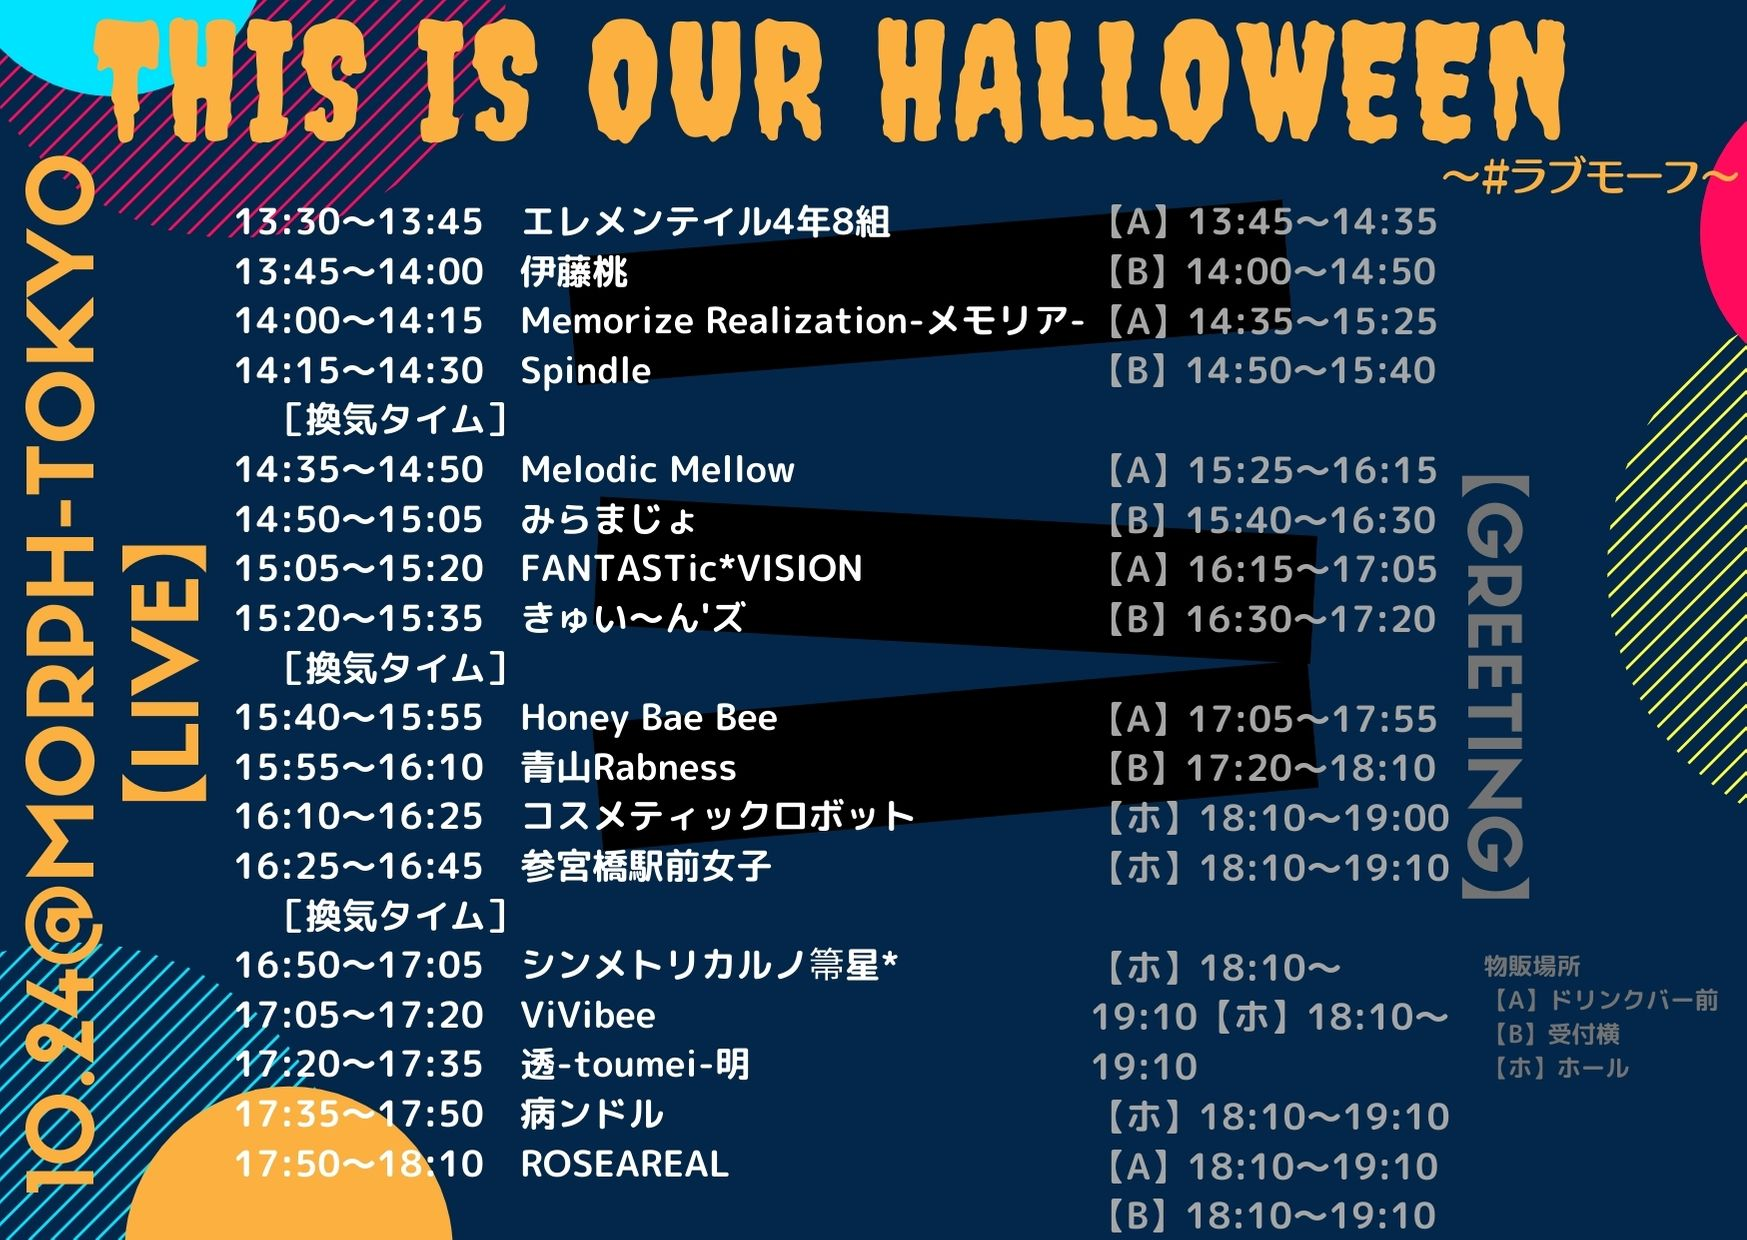 THIS is OUR HALLOWEEN~ #ラブモーフ ~ タイムテーブル